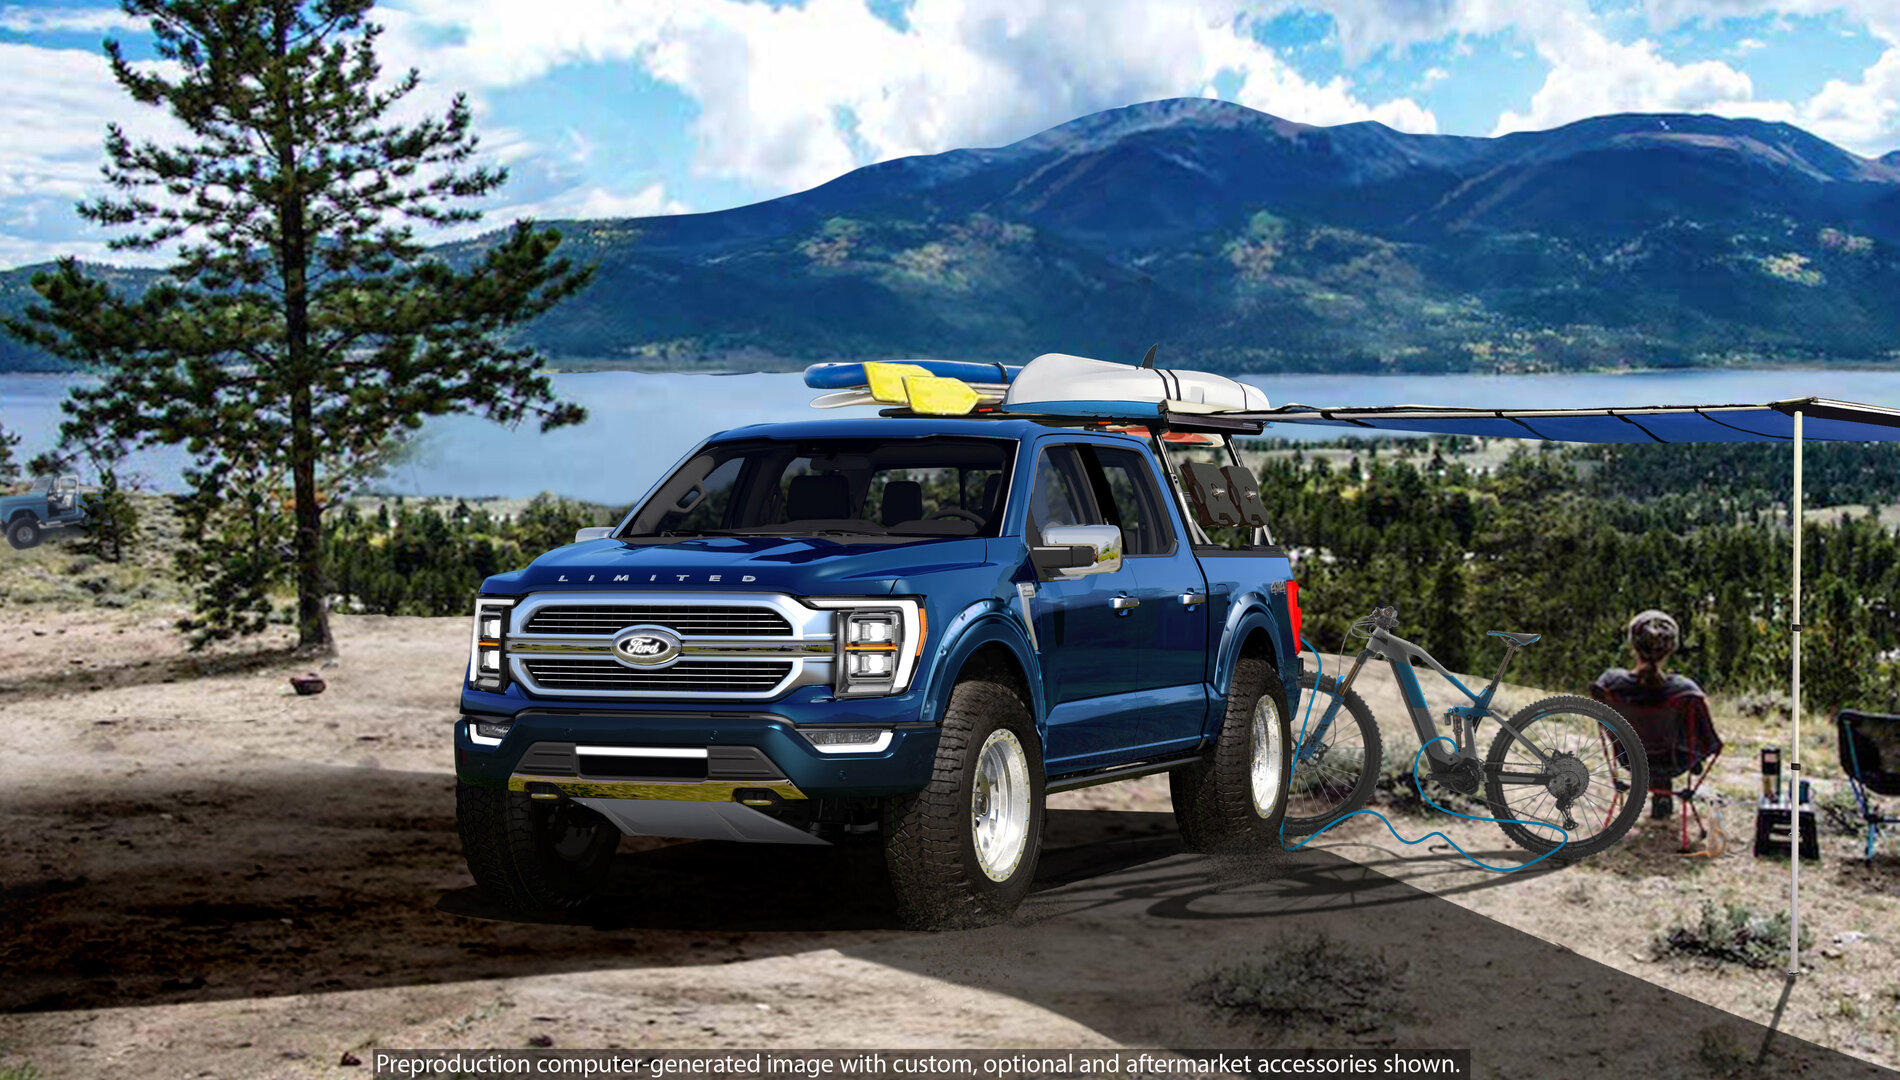 2021-Ford-F150-Limited-Hybrid-SuperCrew-4x4-BDS-Suspension_01.jpg